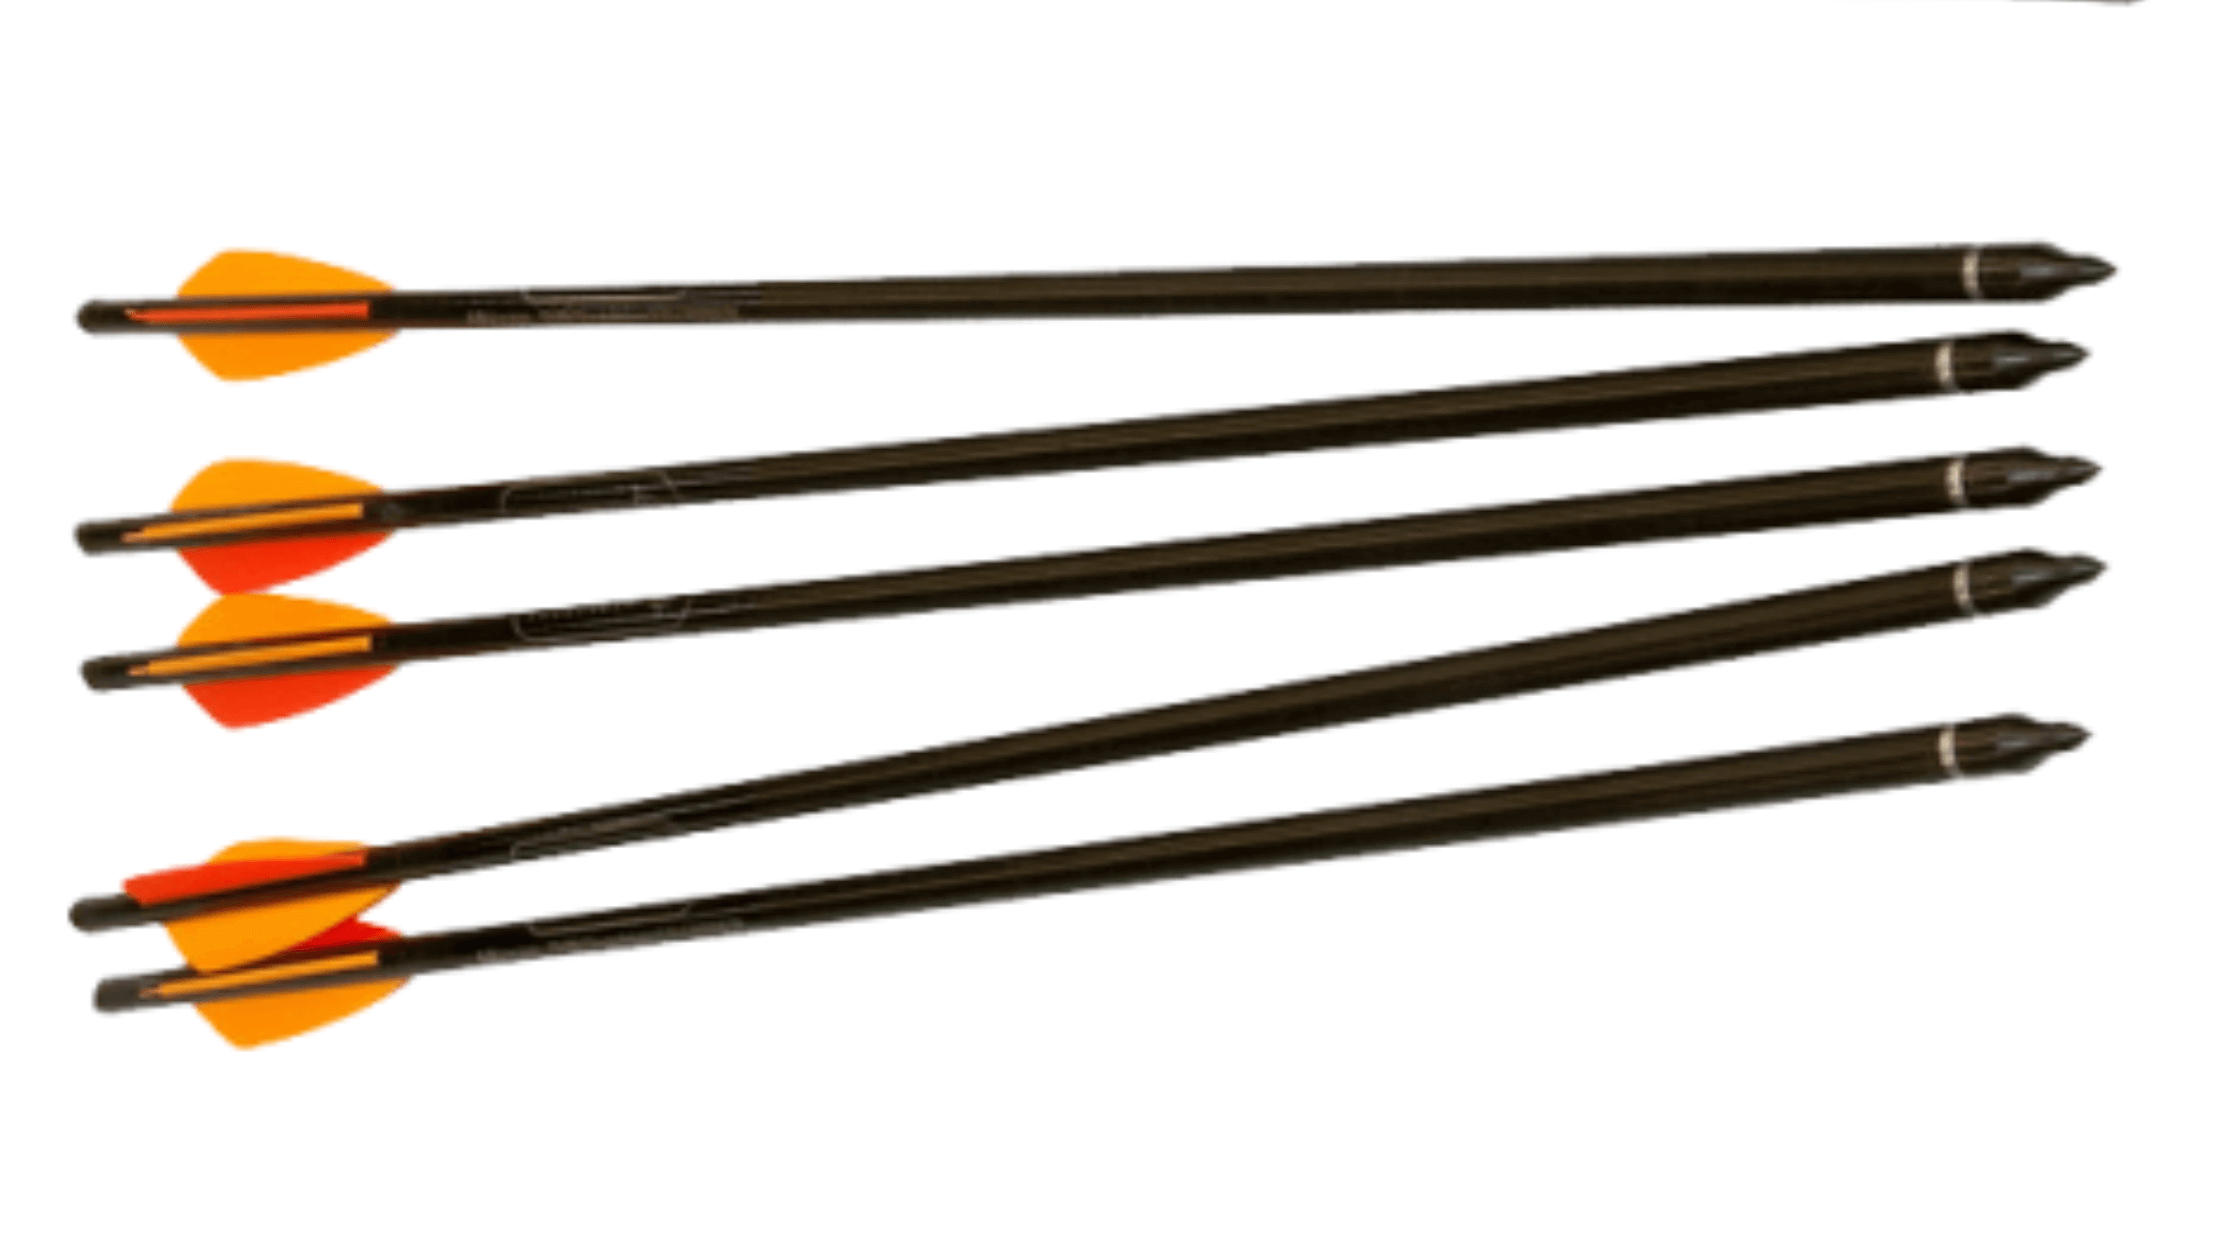 Headhunter arrows used for field testing the Barnett Predator crossbow